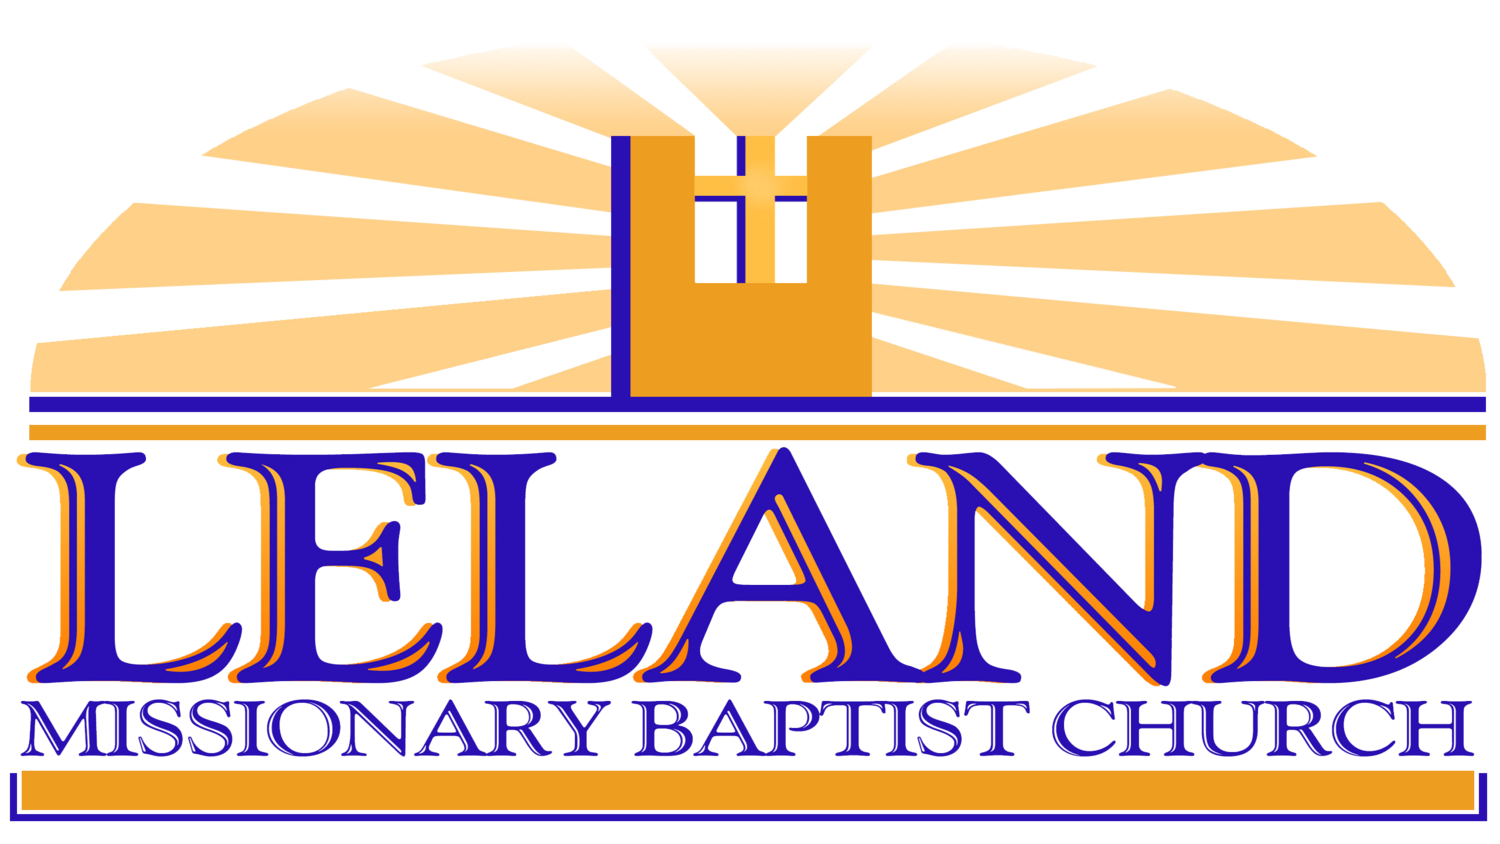 Leland Missionary Baptist Church